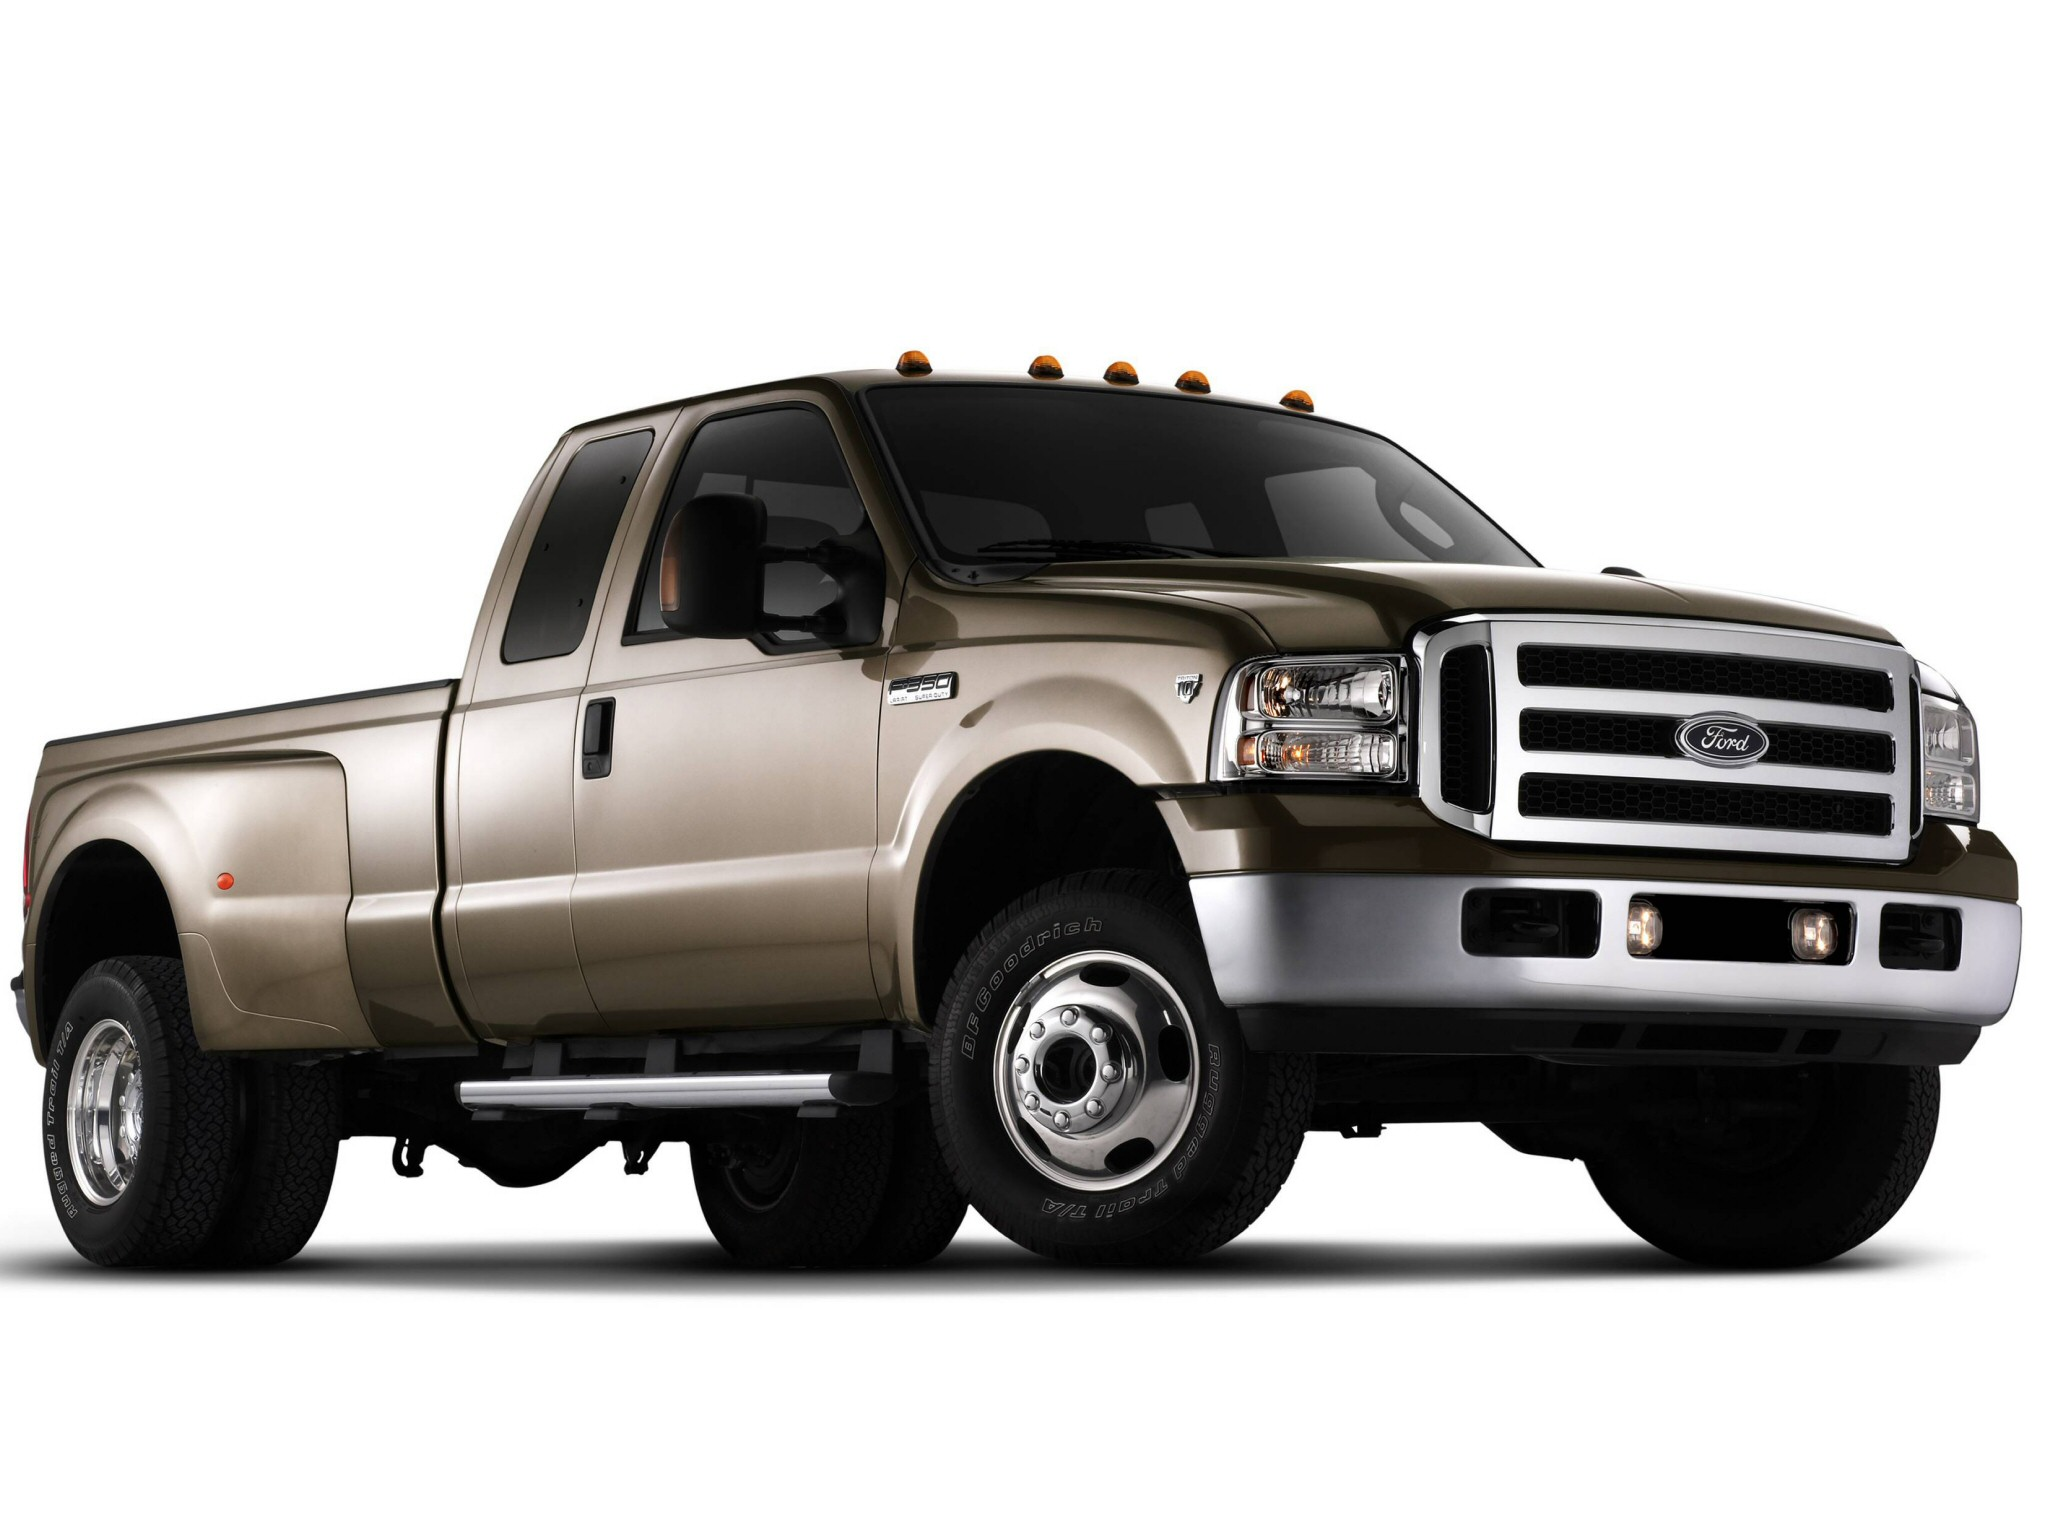 Ford F-350 Super Duty 2004 #3